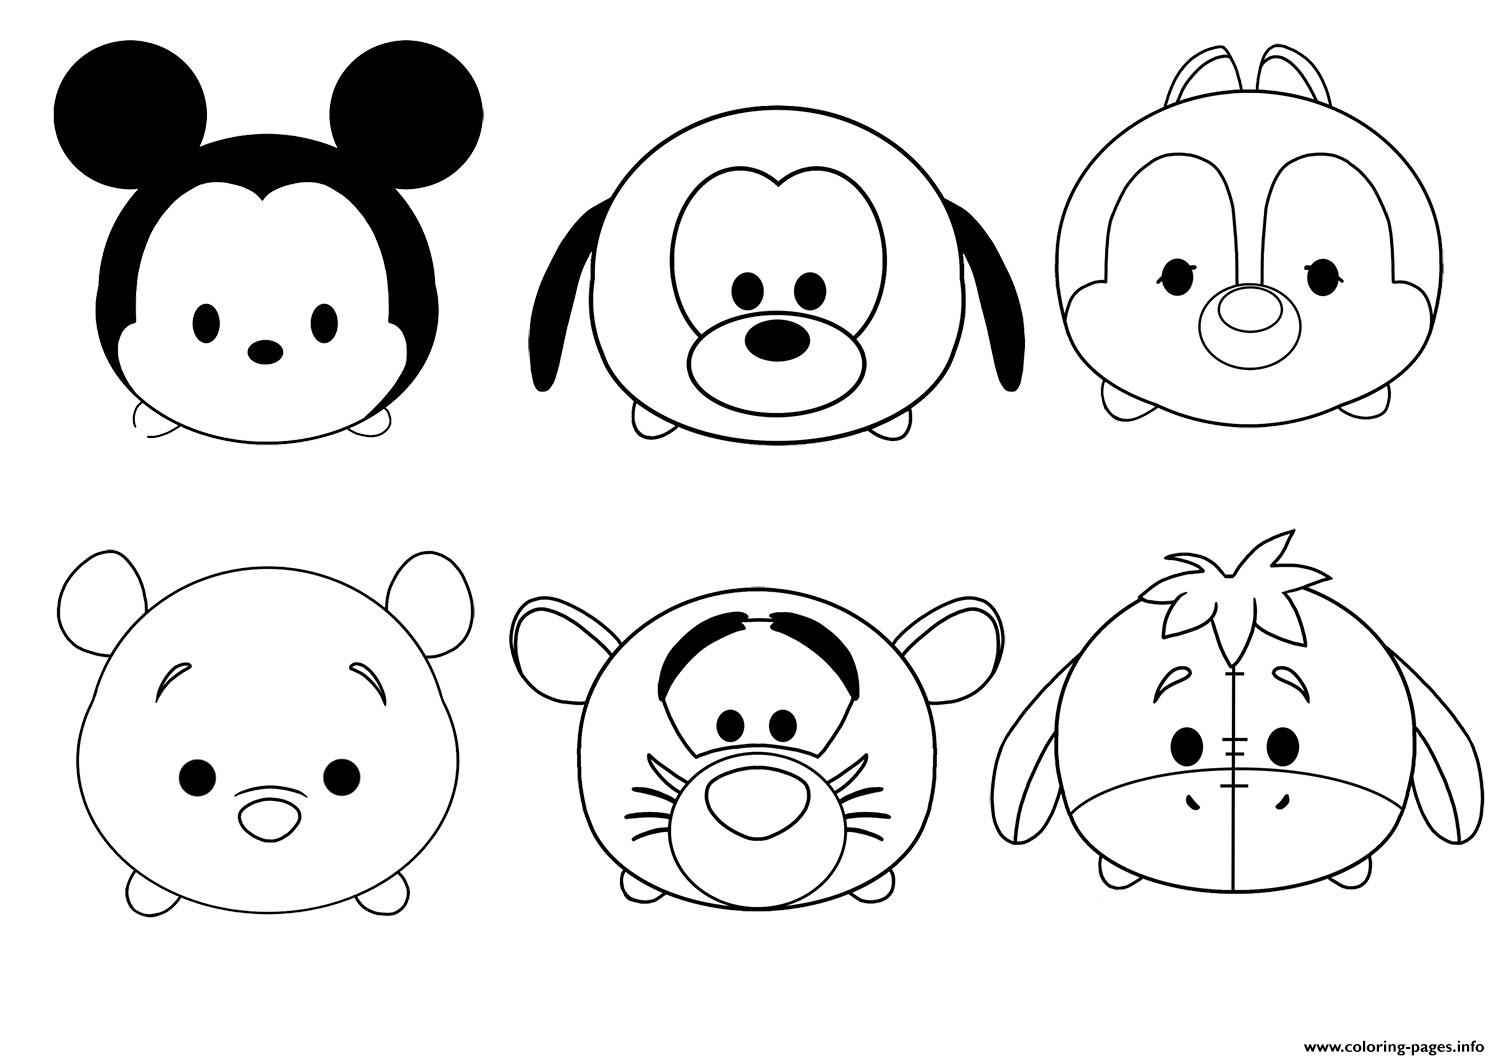 tsum tsum coloring pages tsum tsum disney colouring pages coloring pages printable